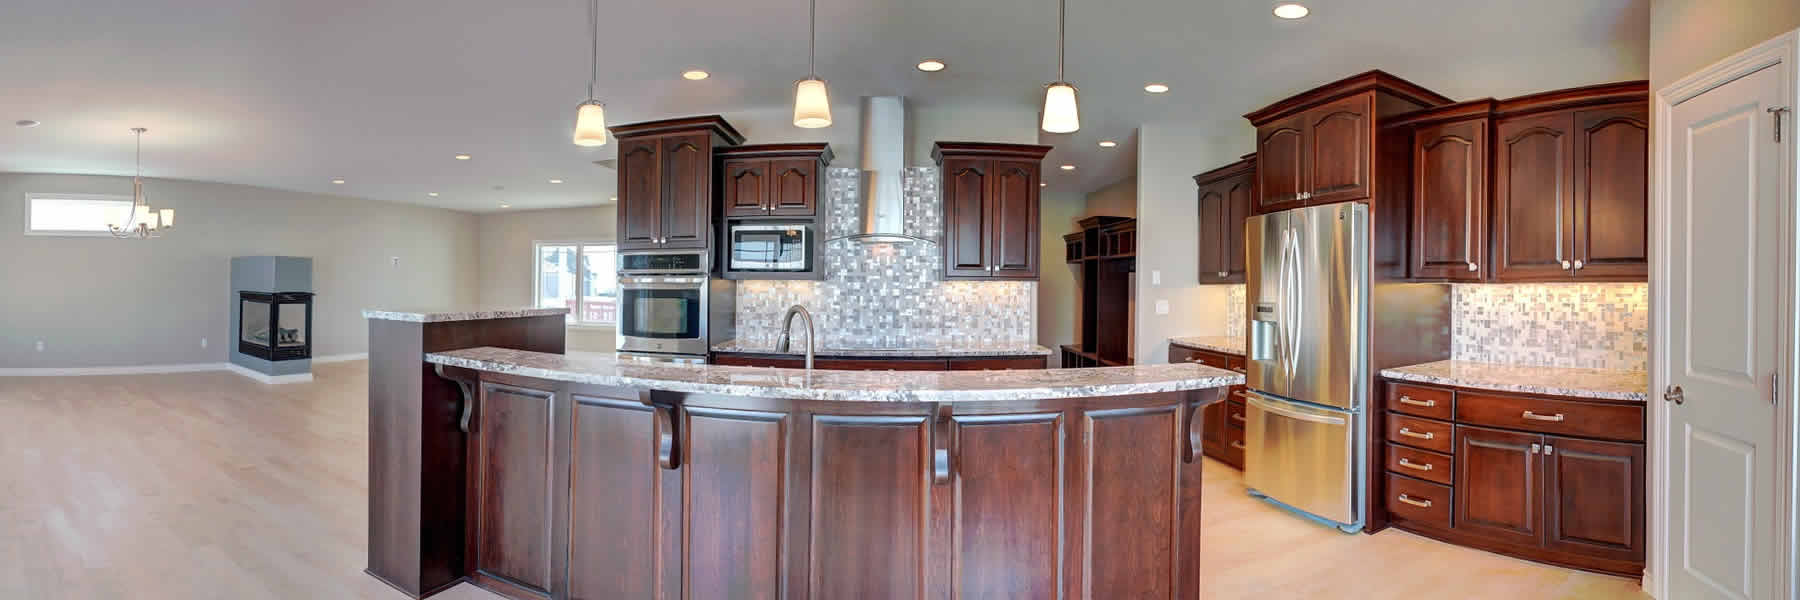 See great customer testimonials of the great homes built by T&S Custom Homes, Inc. of Fargo, North Dakota.